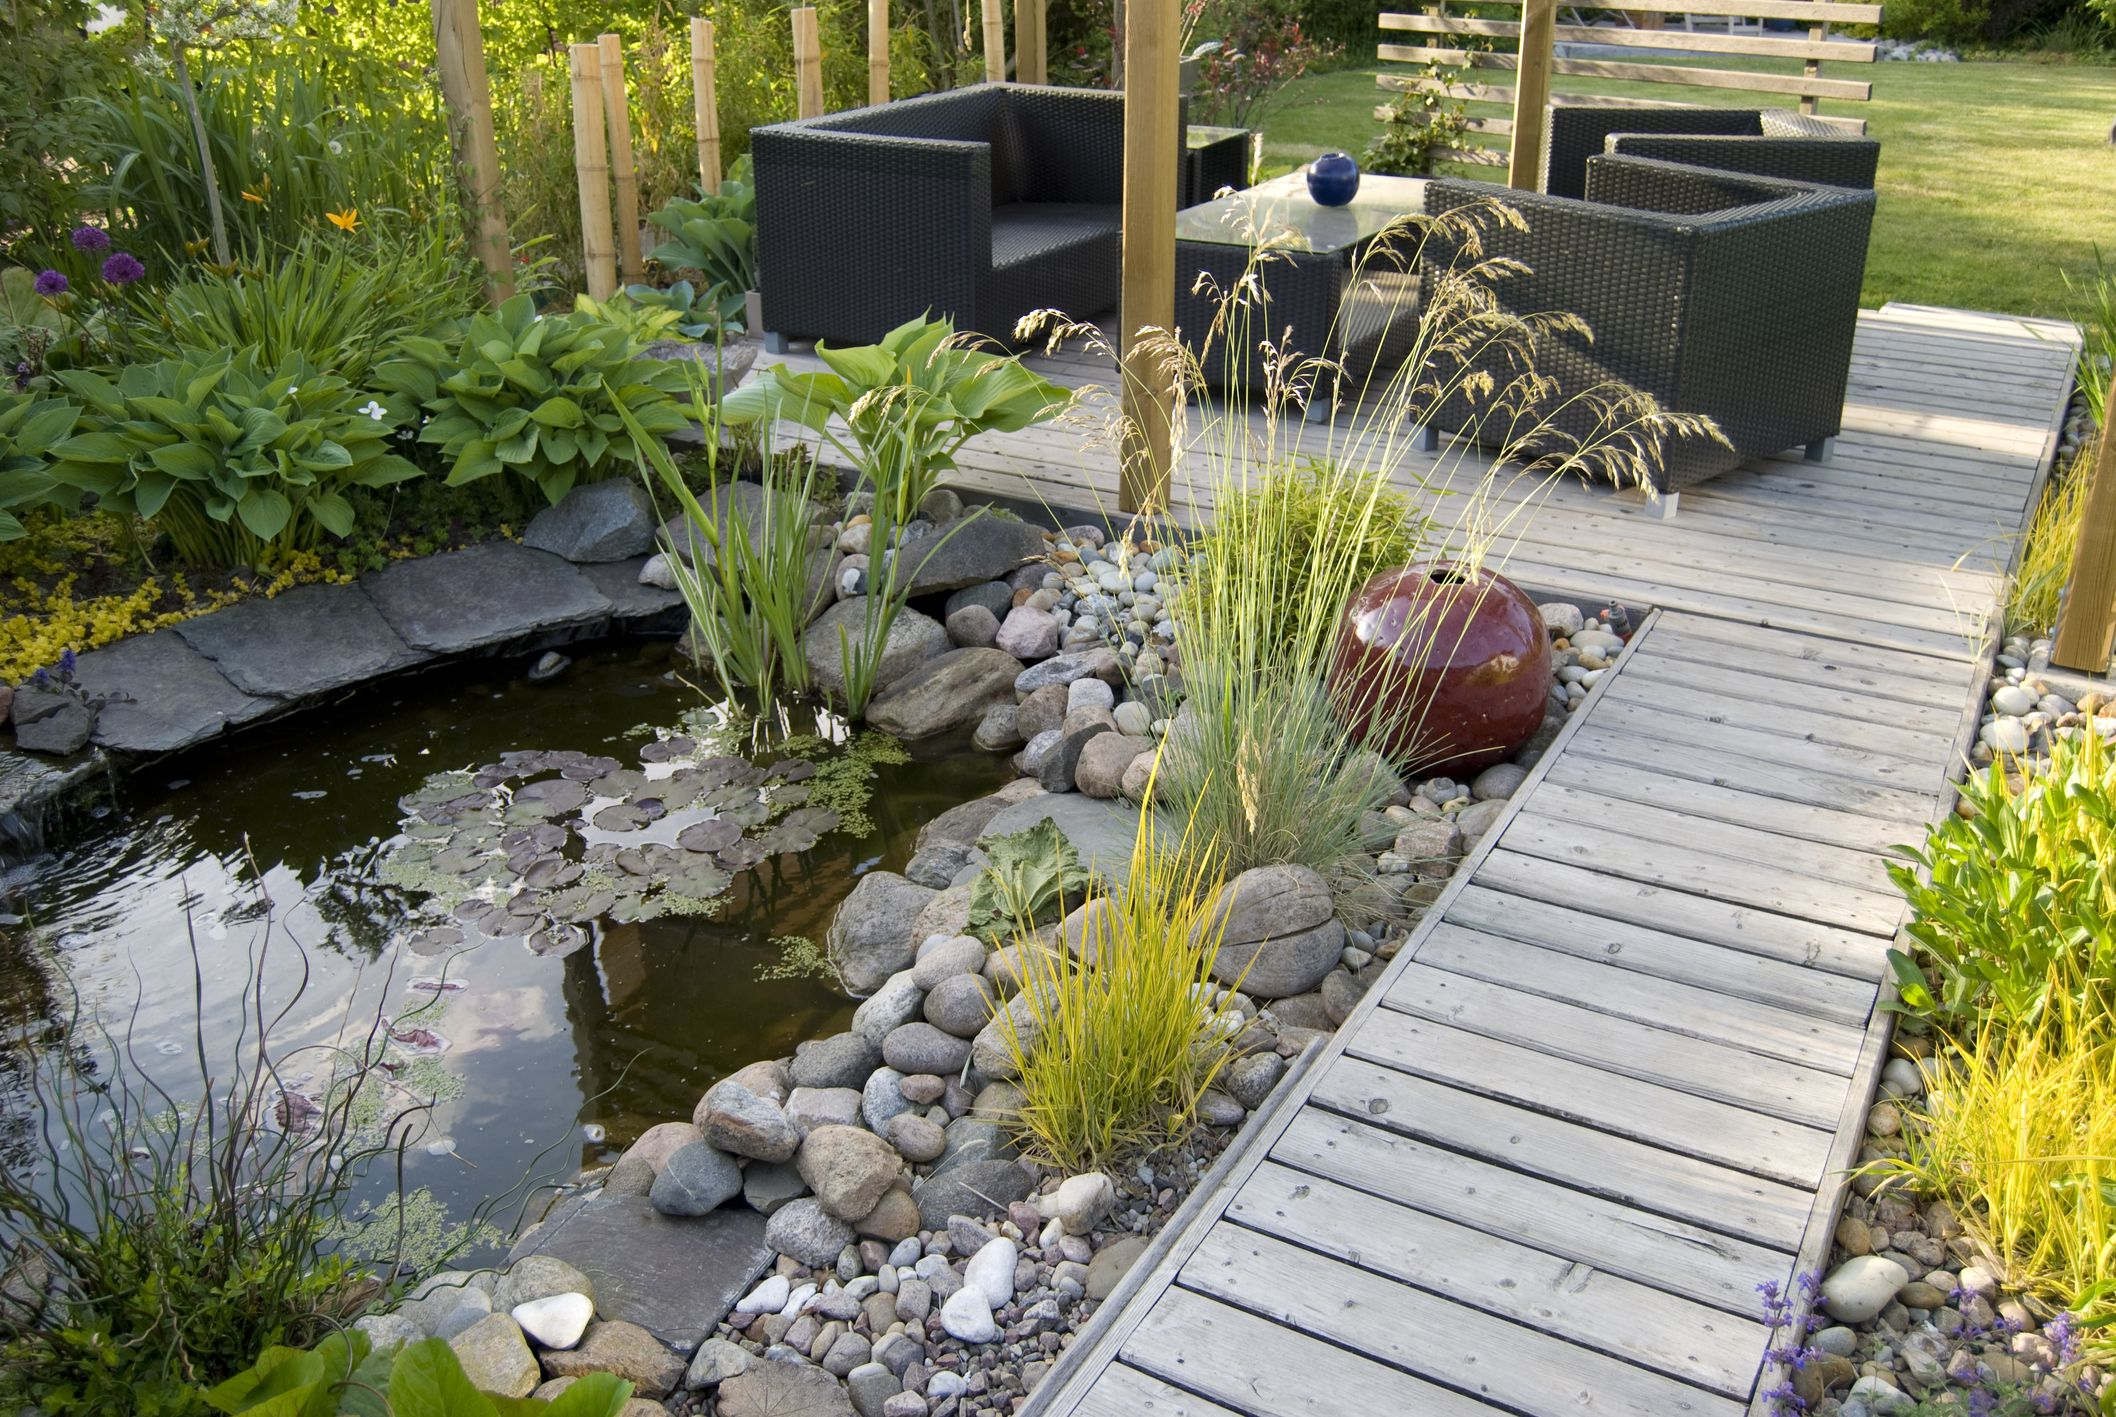 Garden pond surrounded by rock, off a walkway and patio.